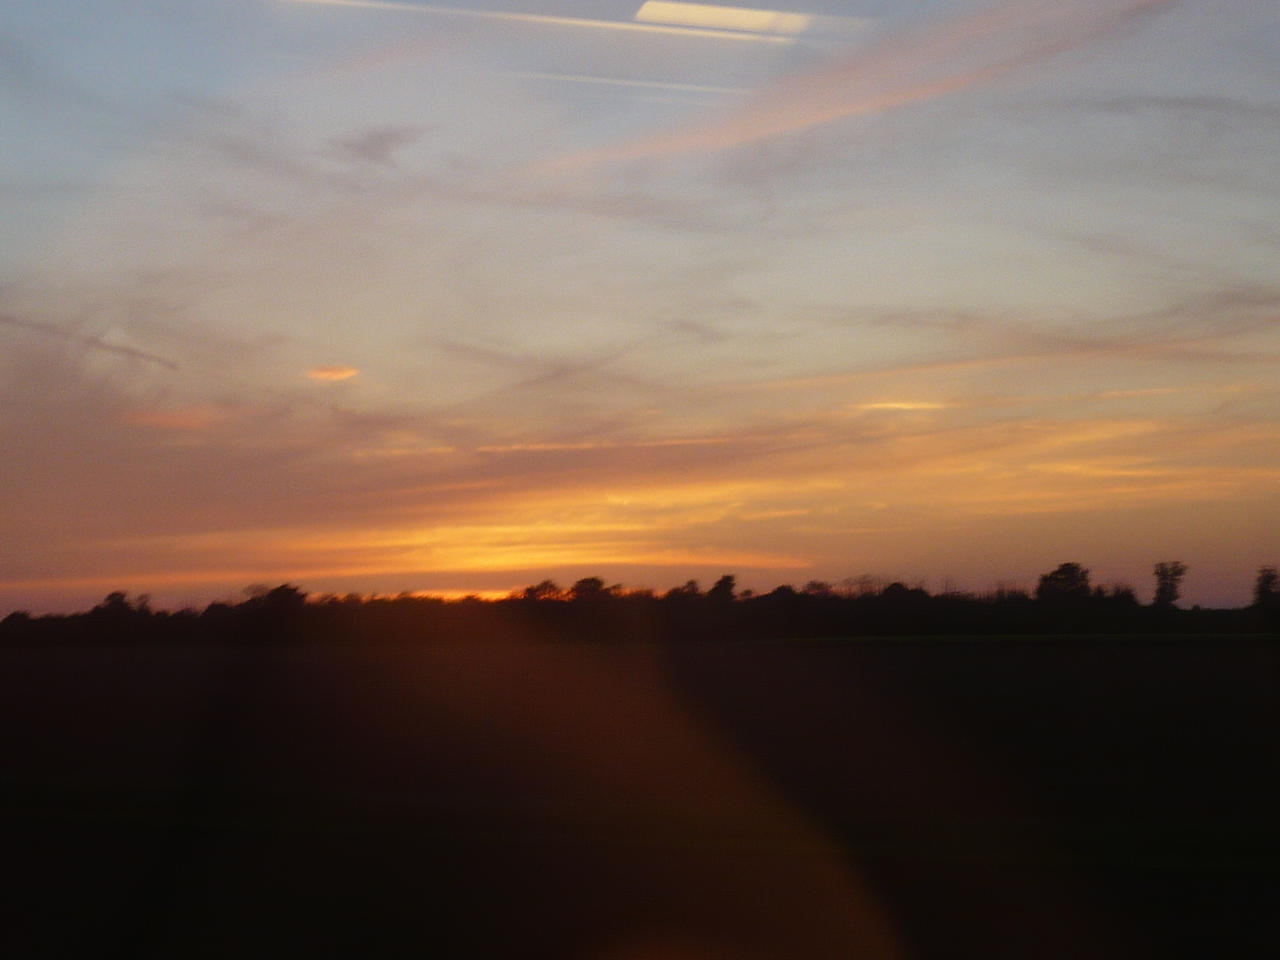 Sunset from the Train by nicolapin